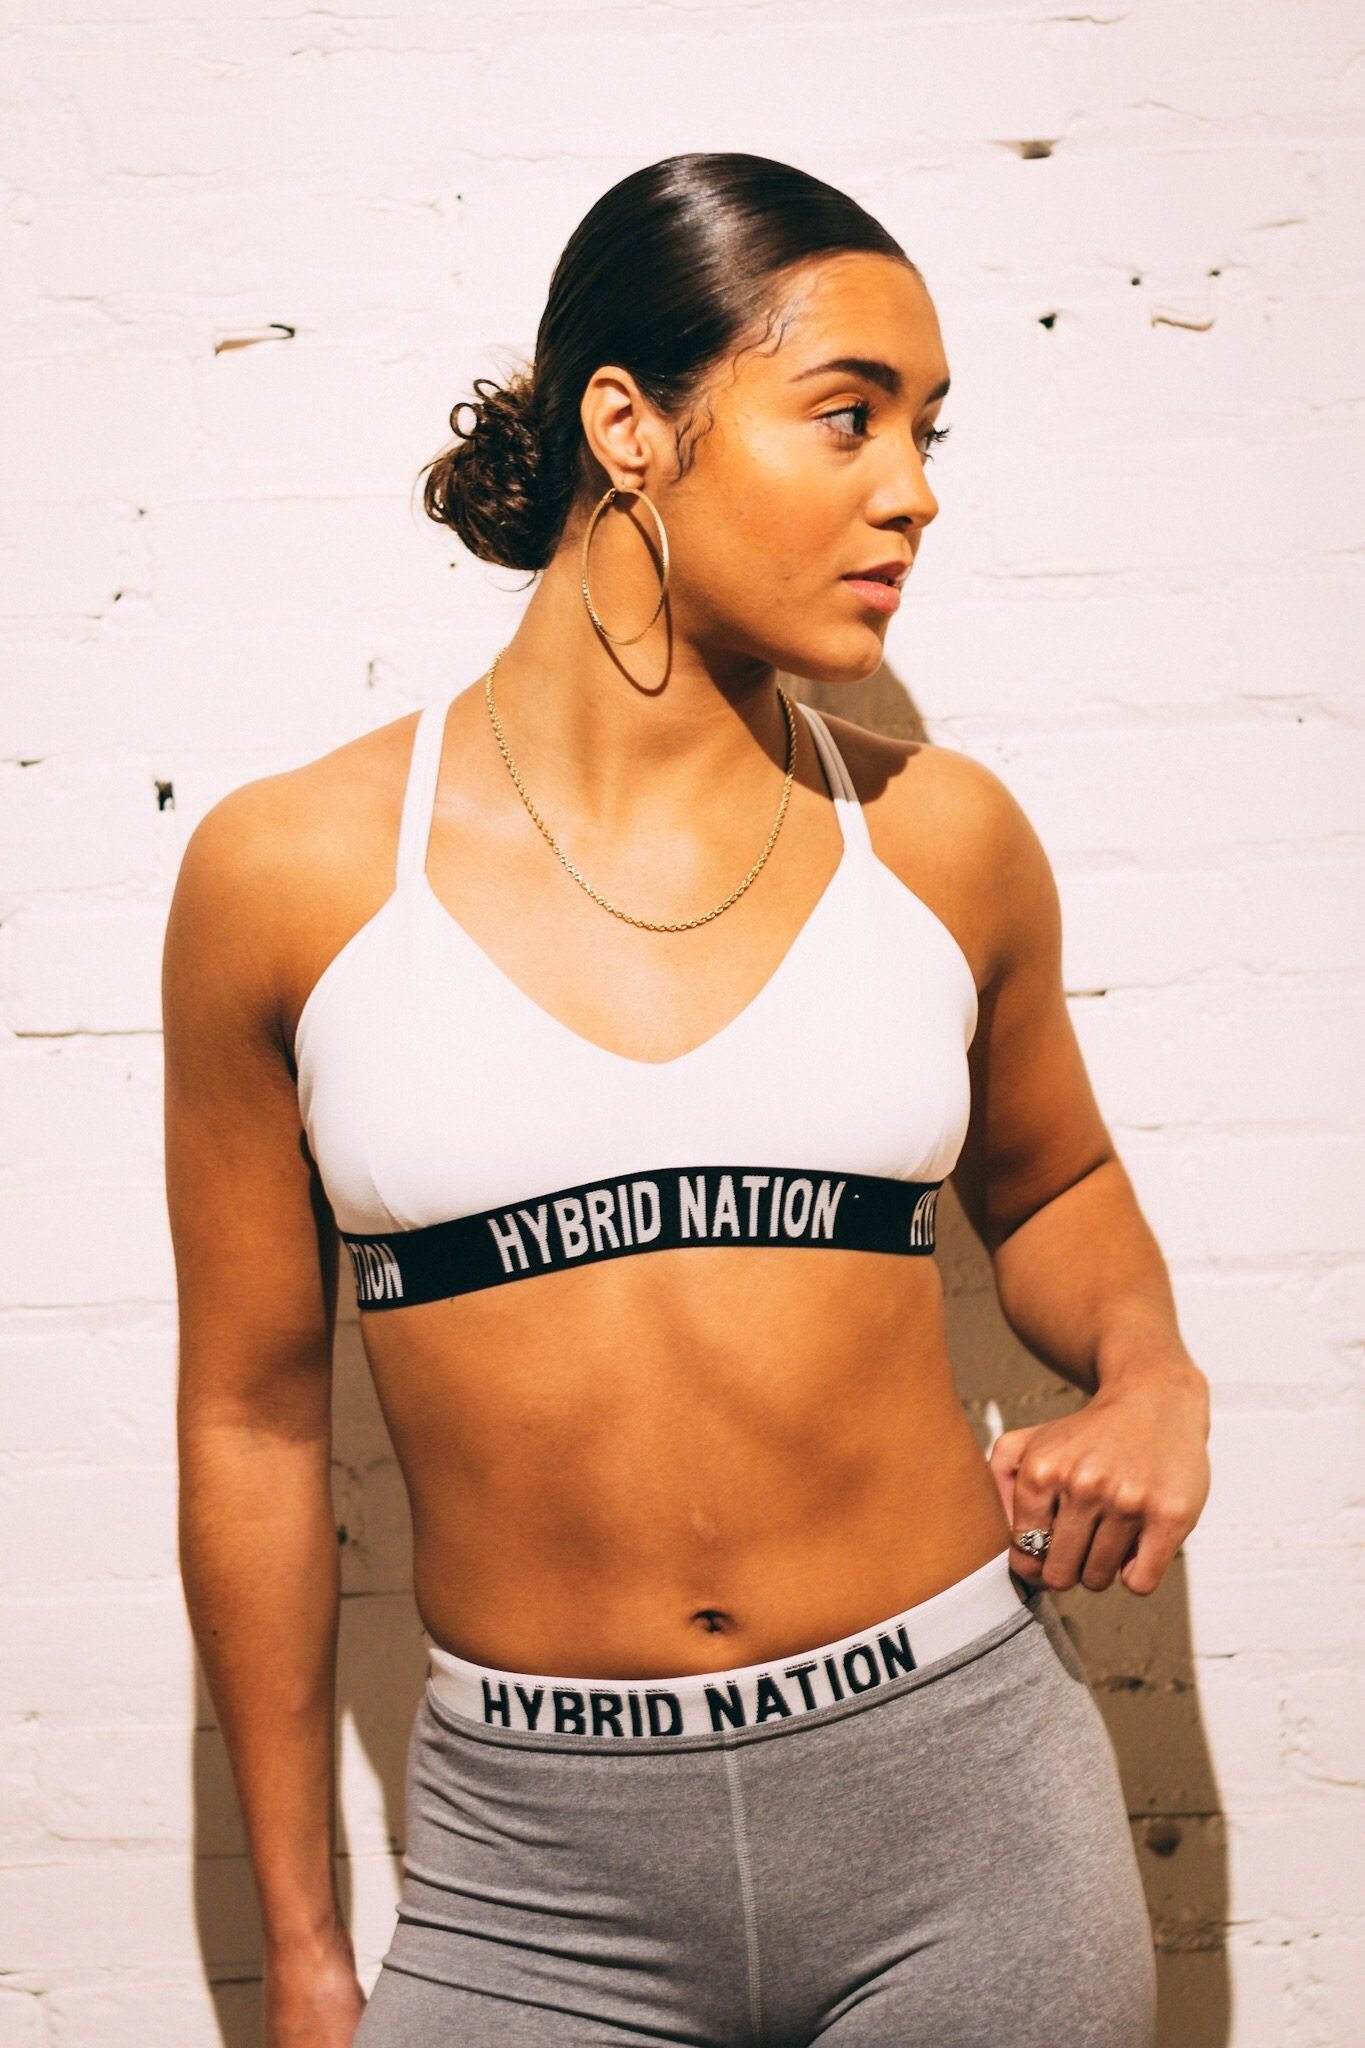 HYBRID NATION WOMEN FREE COMFORT SPORTS BRA (WHITE) Women's Sports Bra Hybrid Nation Women (China) XS